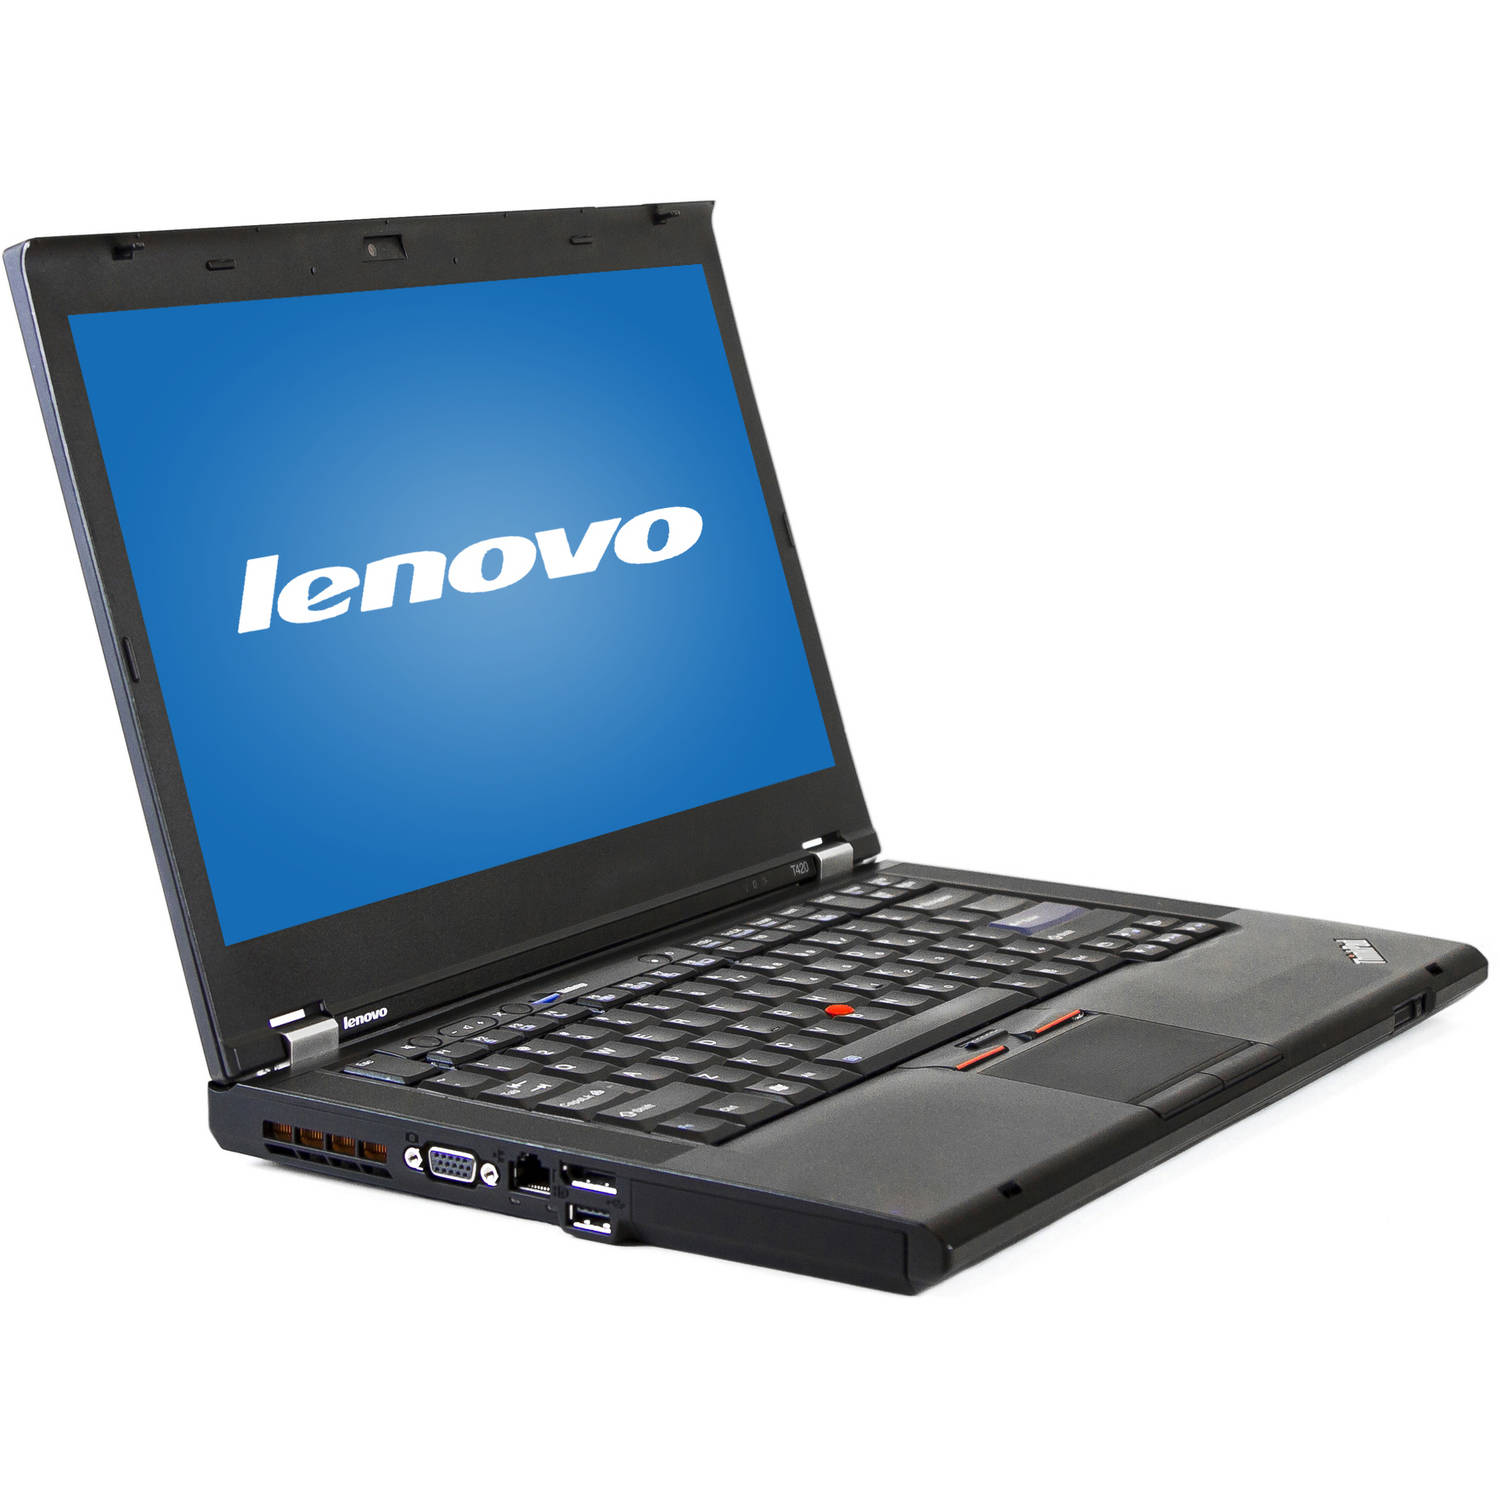 "Refurbished Lenovo Black 14"" T420 Laptop PC with Intel Core i5-2520M Processor, 12GB Memory, 750GB Hard Drive and Windows 7 Professional 64-Bit"